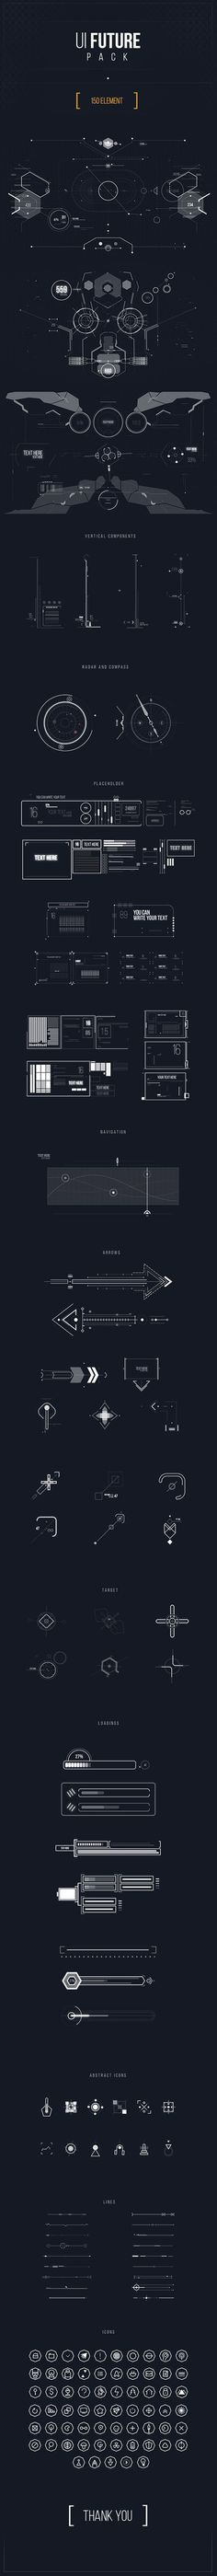 Great idea for wall decor! Checkout UI FUTURE PACK on Behance